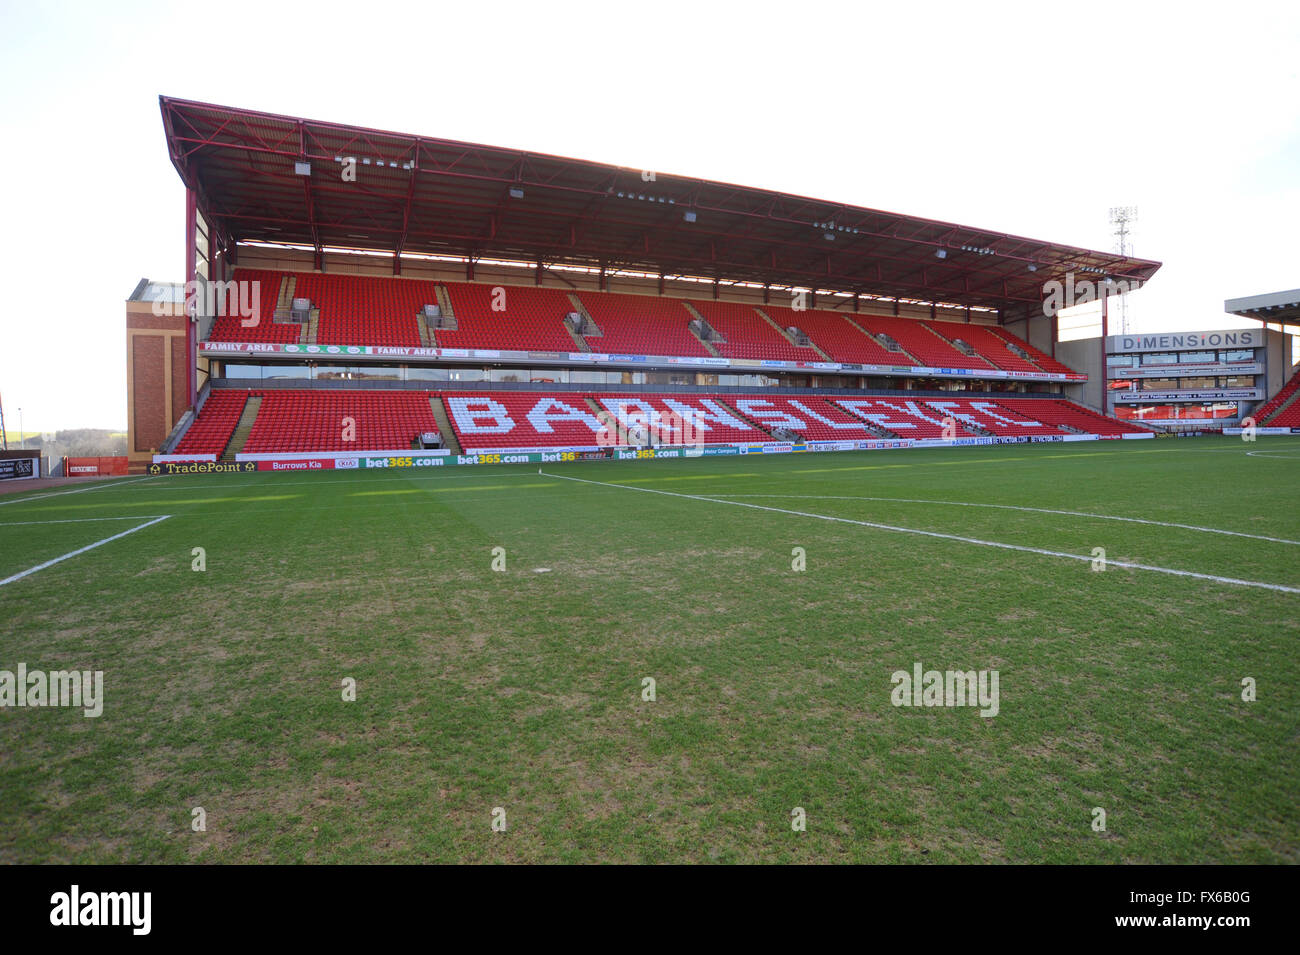 East stand at Barnsley FC, Oakwell, Barnsley, South Yorkshire, UK. - Stock Image